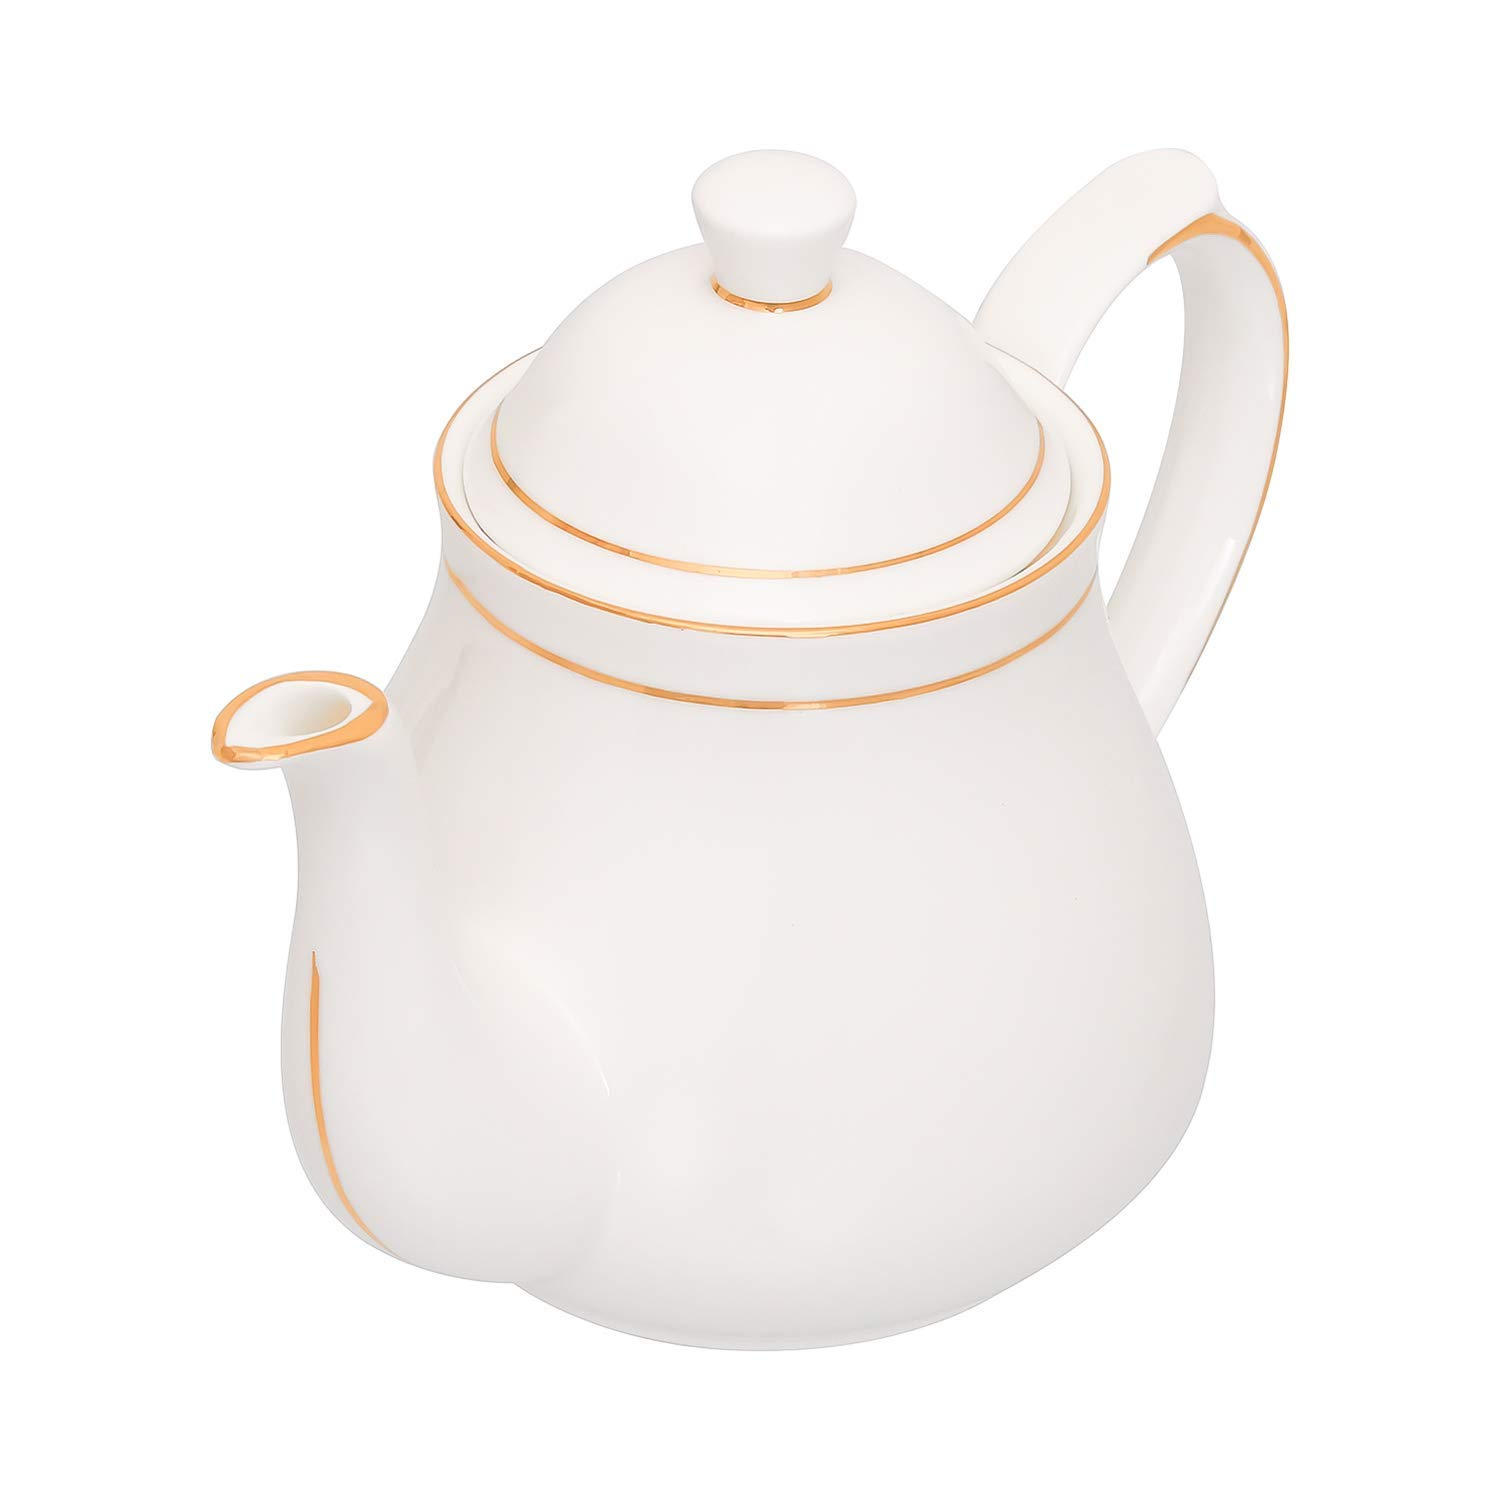 Indian Ceramic Gold Line Tea Kettle for Home - 1000 ML, 1pc, Serving for 5 Person